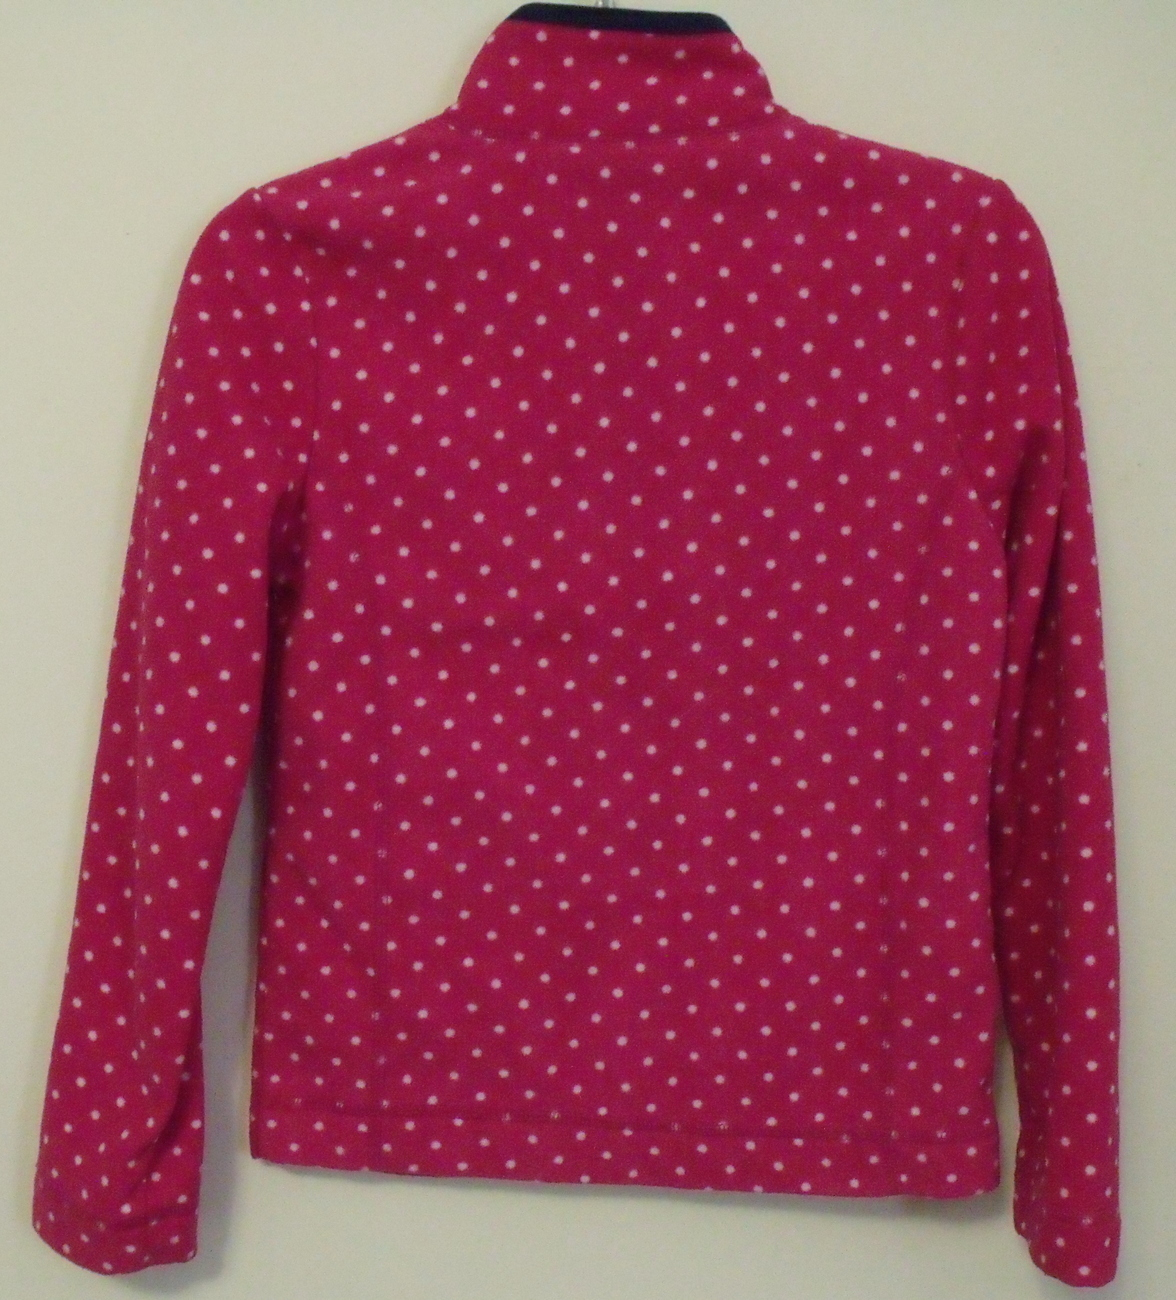 Girls Old Navy Pink with White Dots Navy Blue Trim Long Sleeve Fleece Top Size M